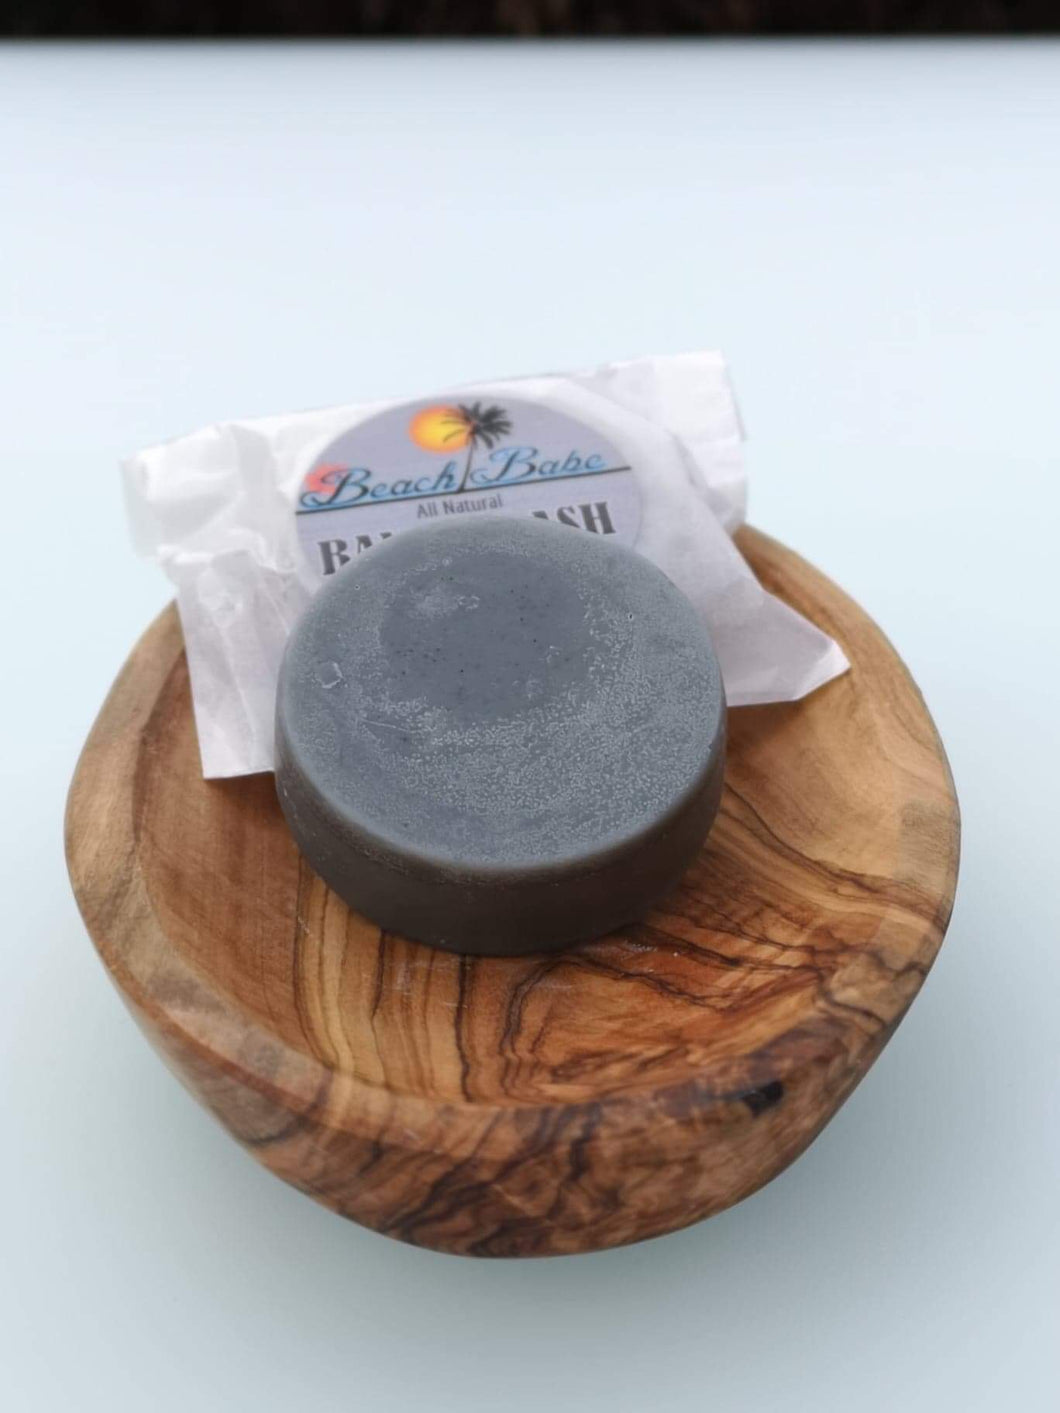 Beach Babe Conditioner bar - Bamboo Ash